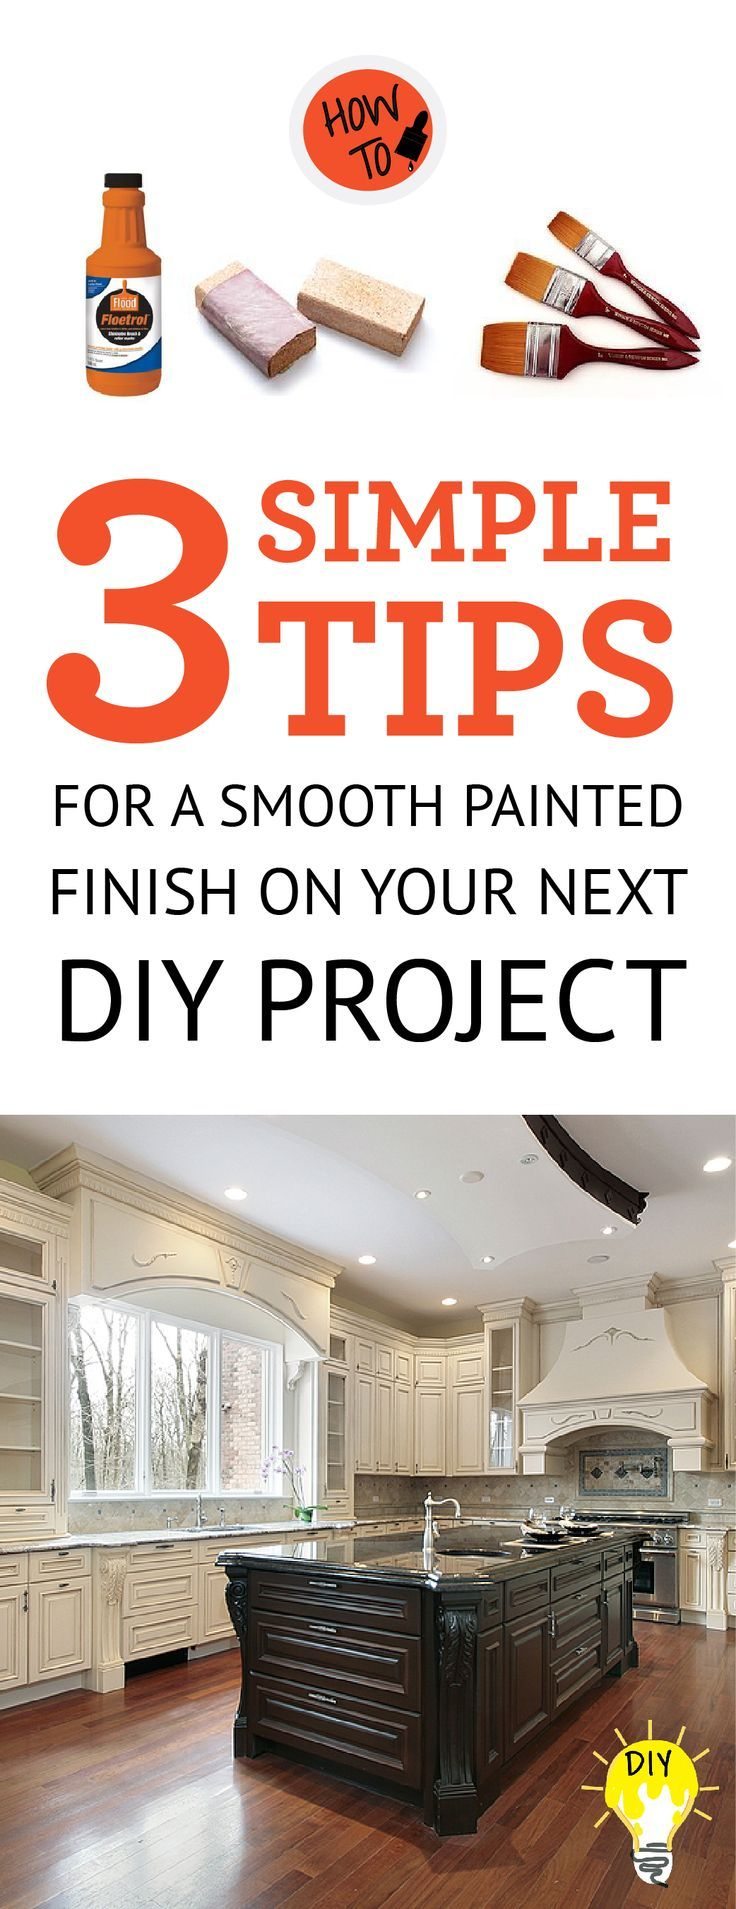 how do i get a smooth finish on painted cabinets